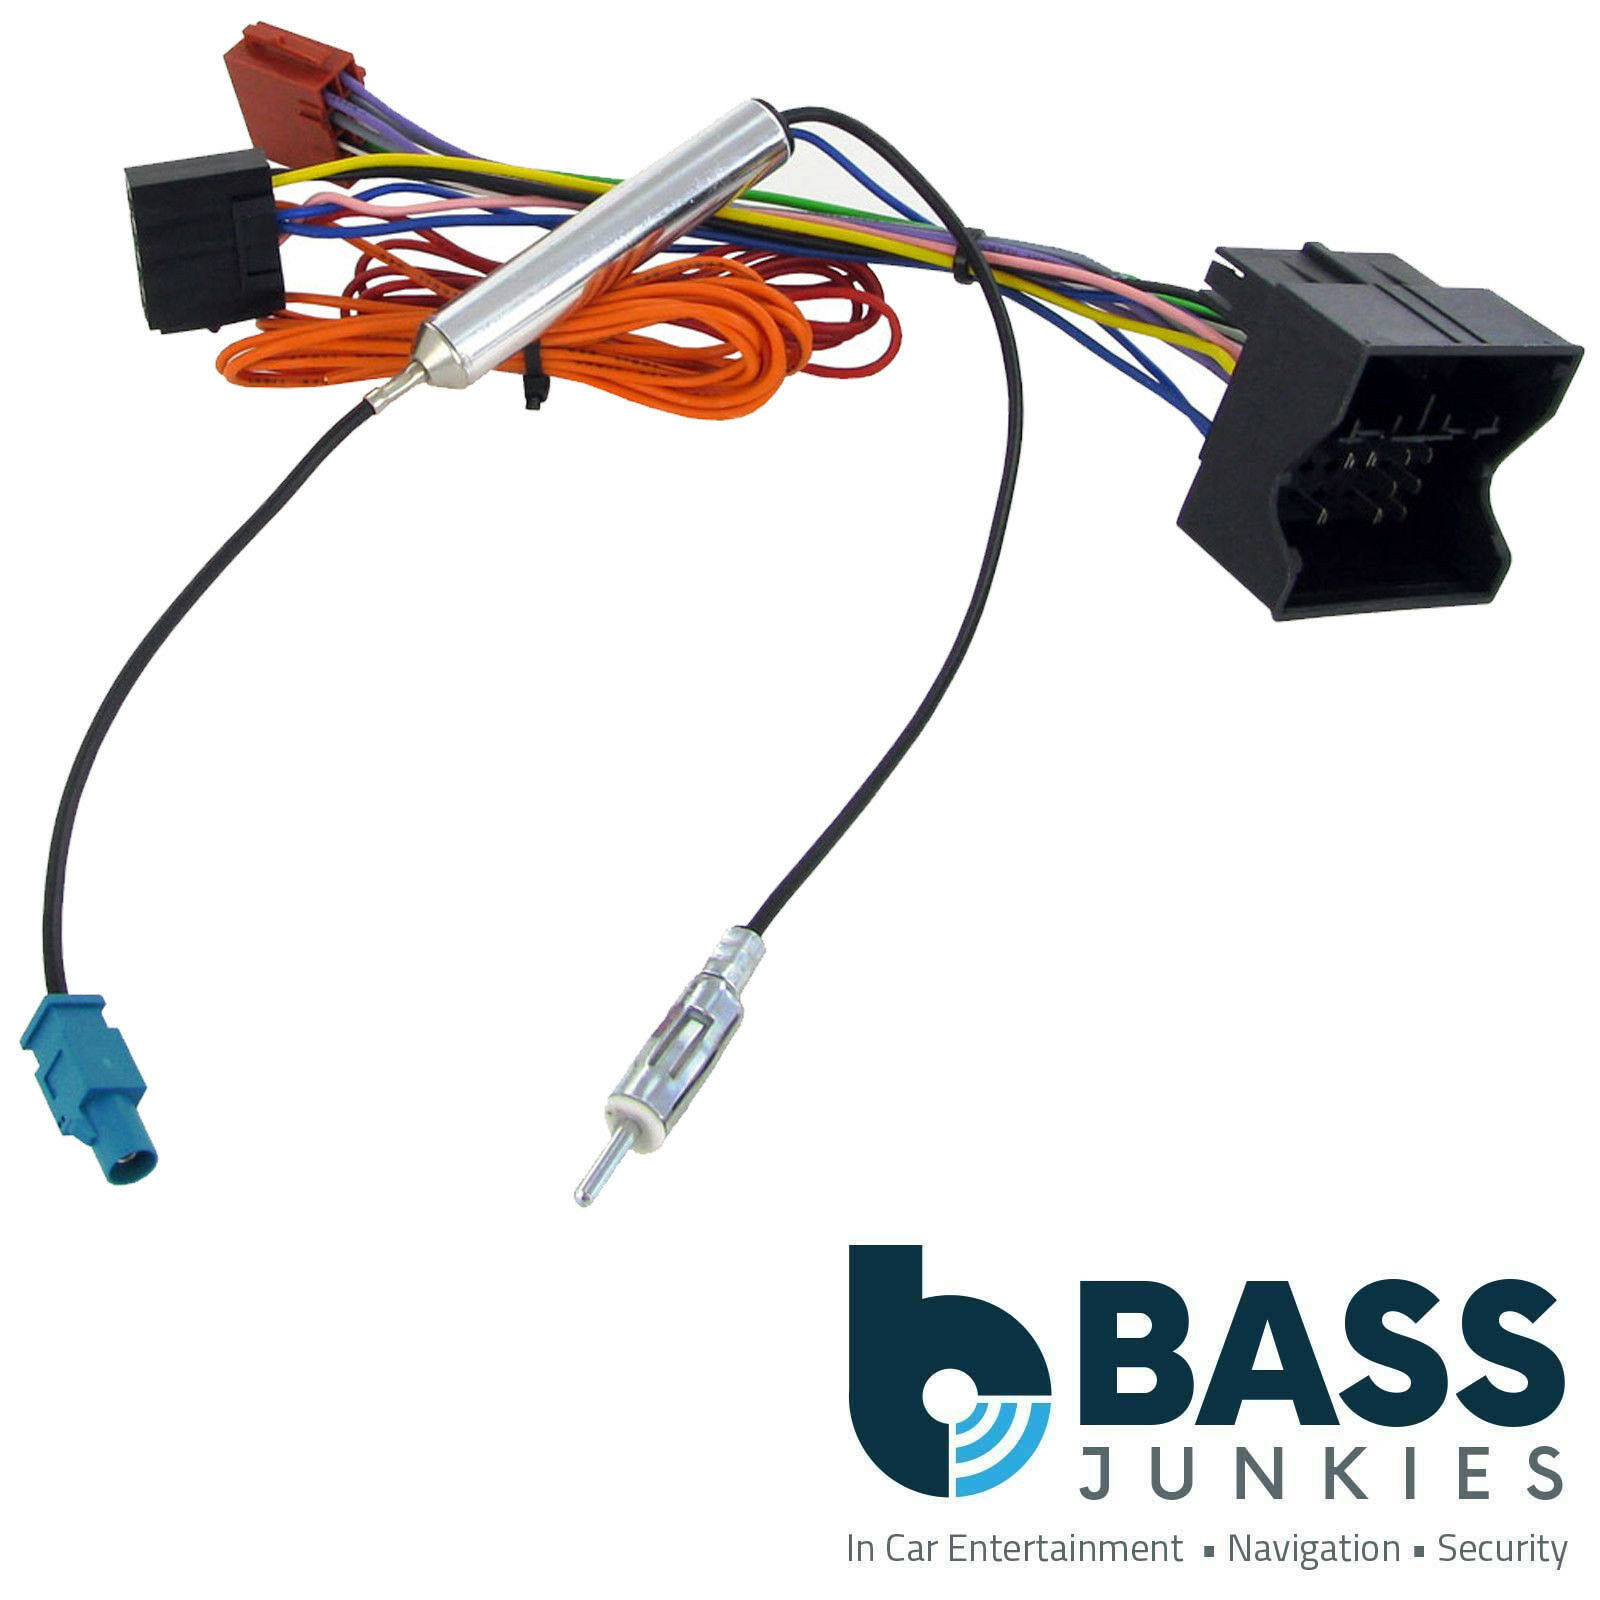 Vw Volkswagen Polo 2004 Radio Stereo Wiring Harness Adapter Iso Aerial Fakra 1 Of 1free Shipping See More